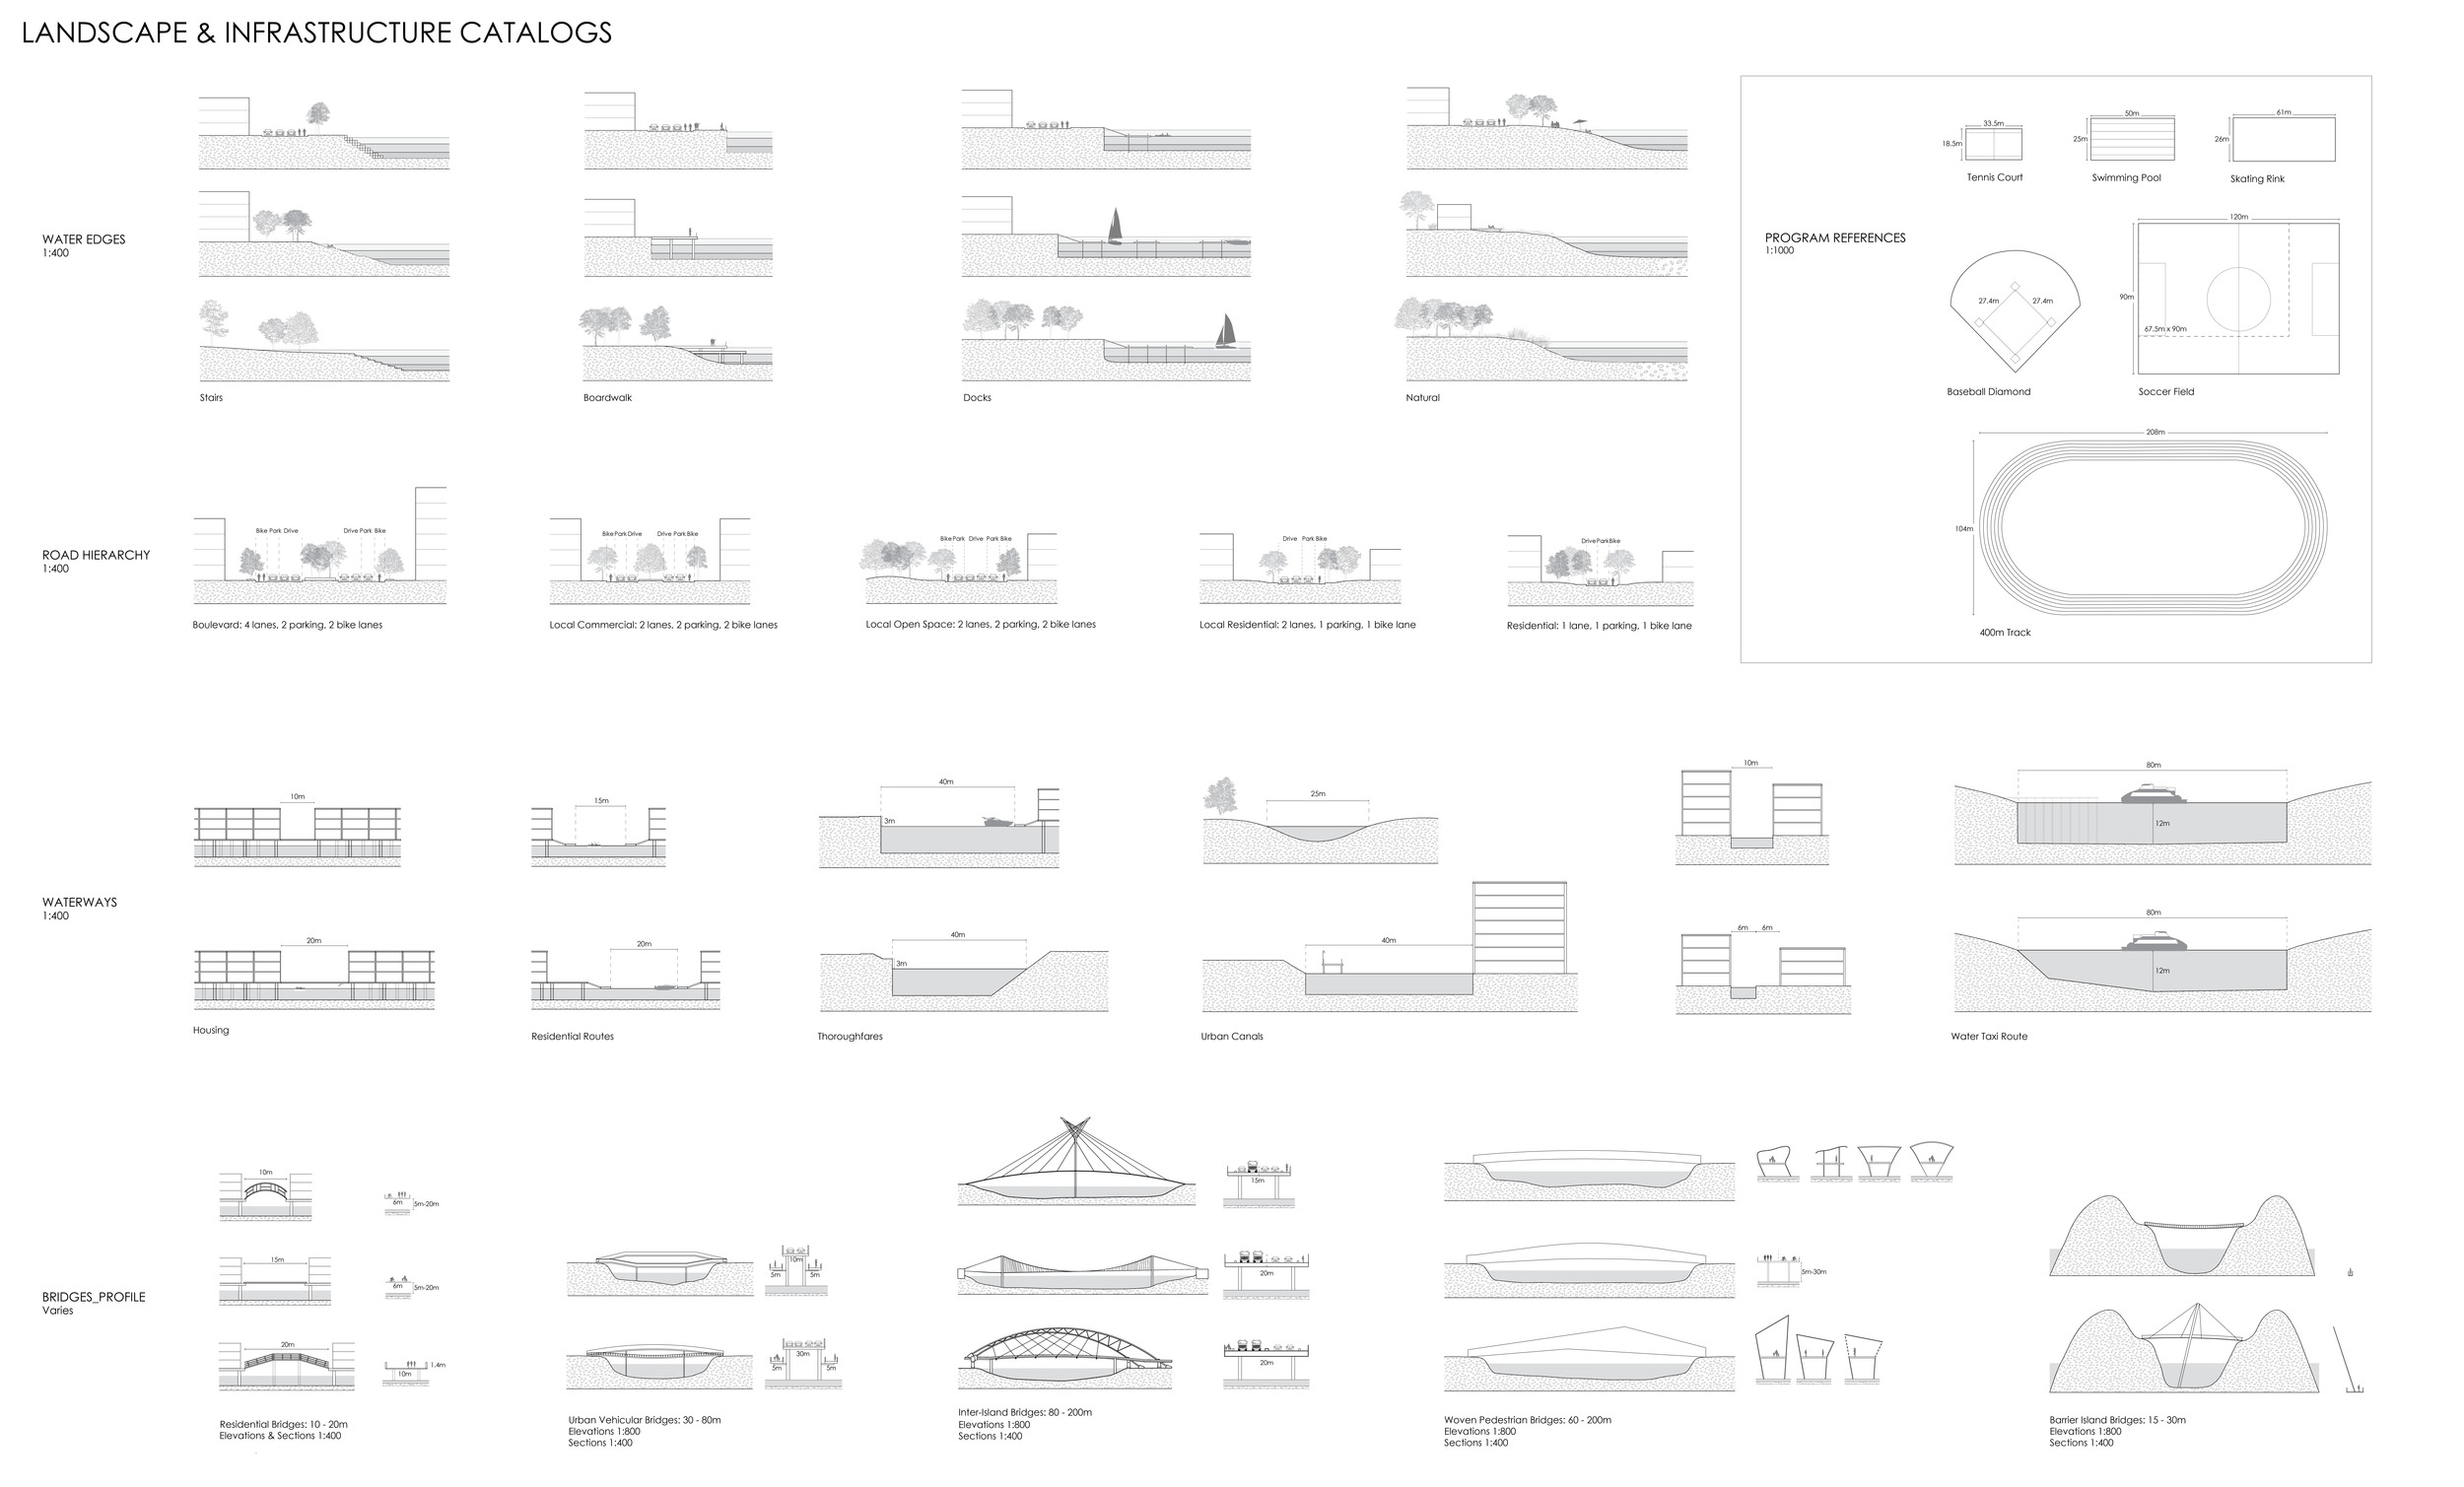 Landscape and Infrastructure Catalogs